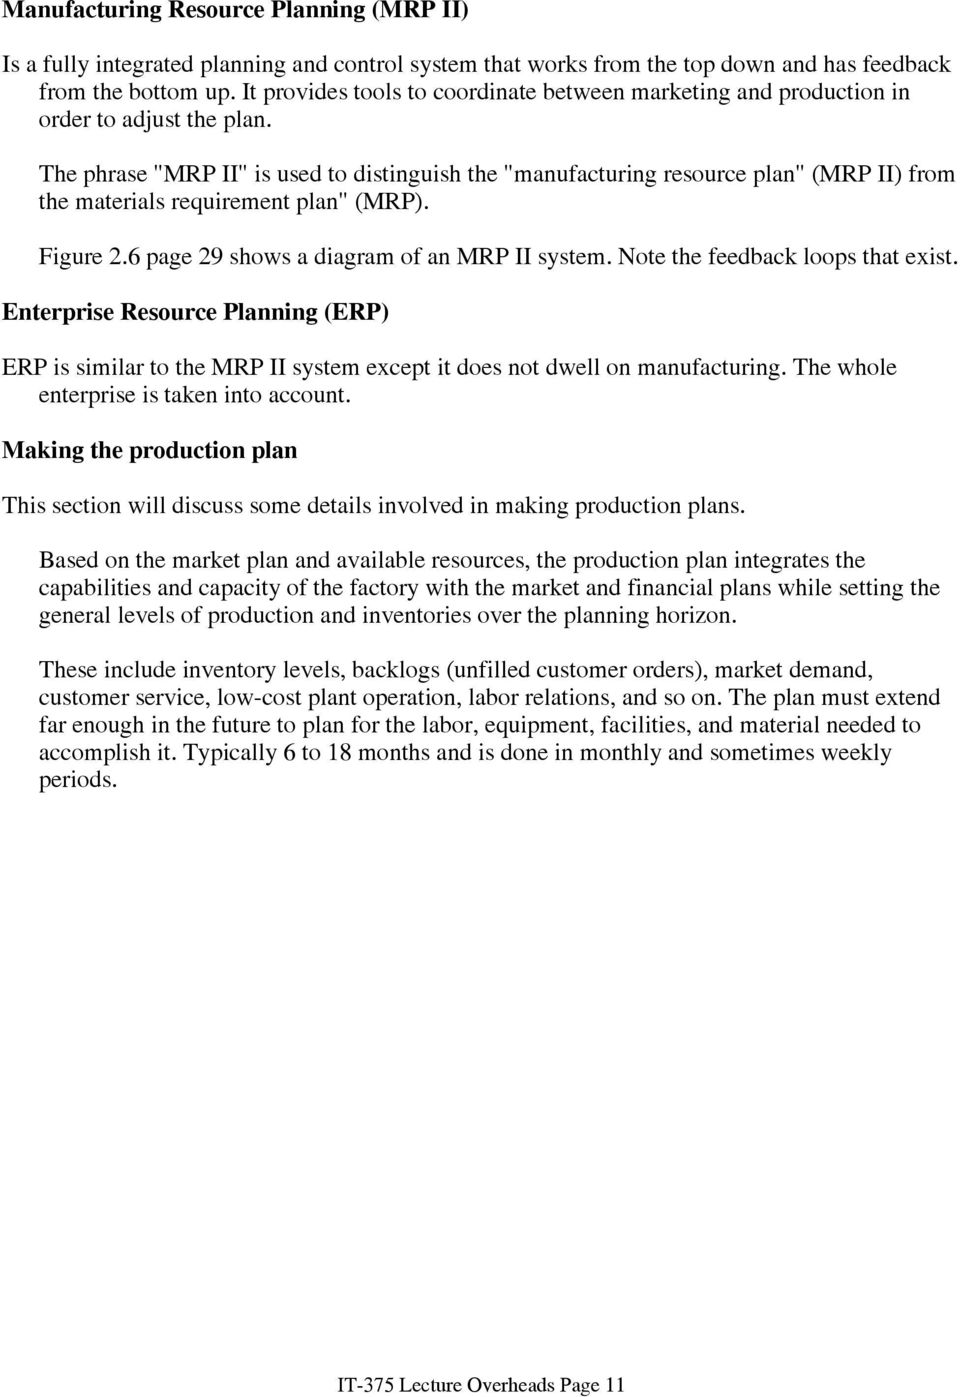 hight resolution of the phrase mrp ii is used to distinguish the manufacturing resource plan